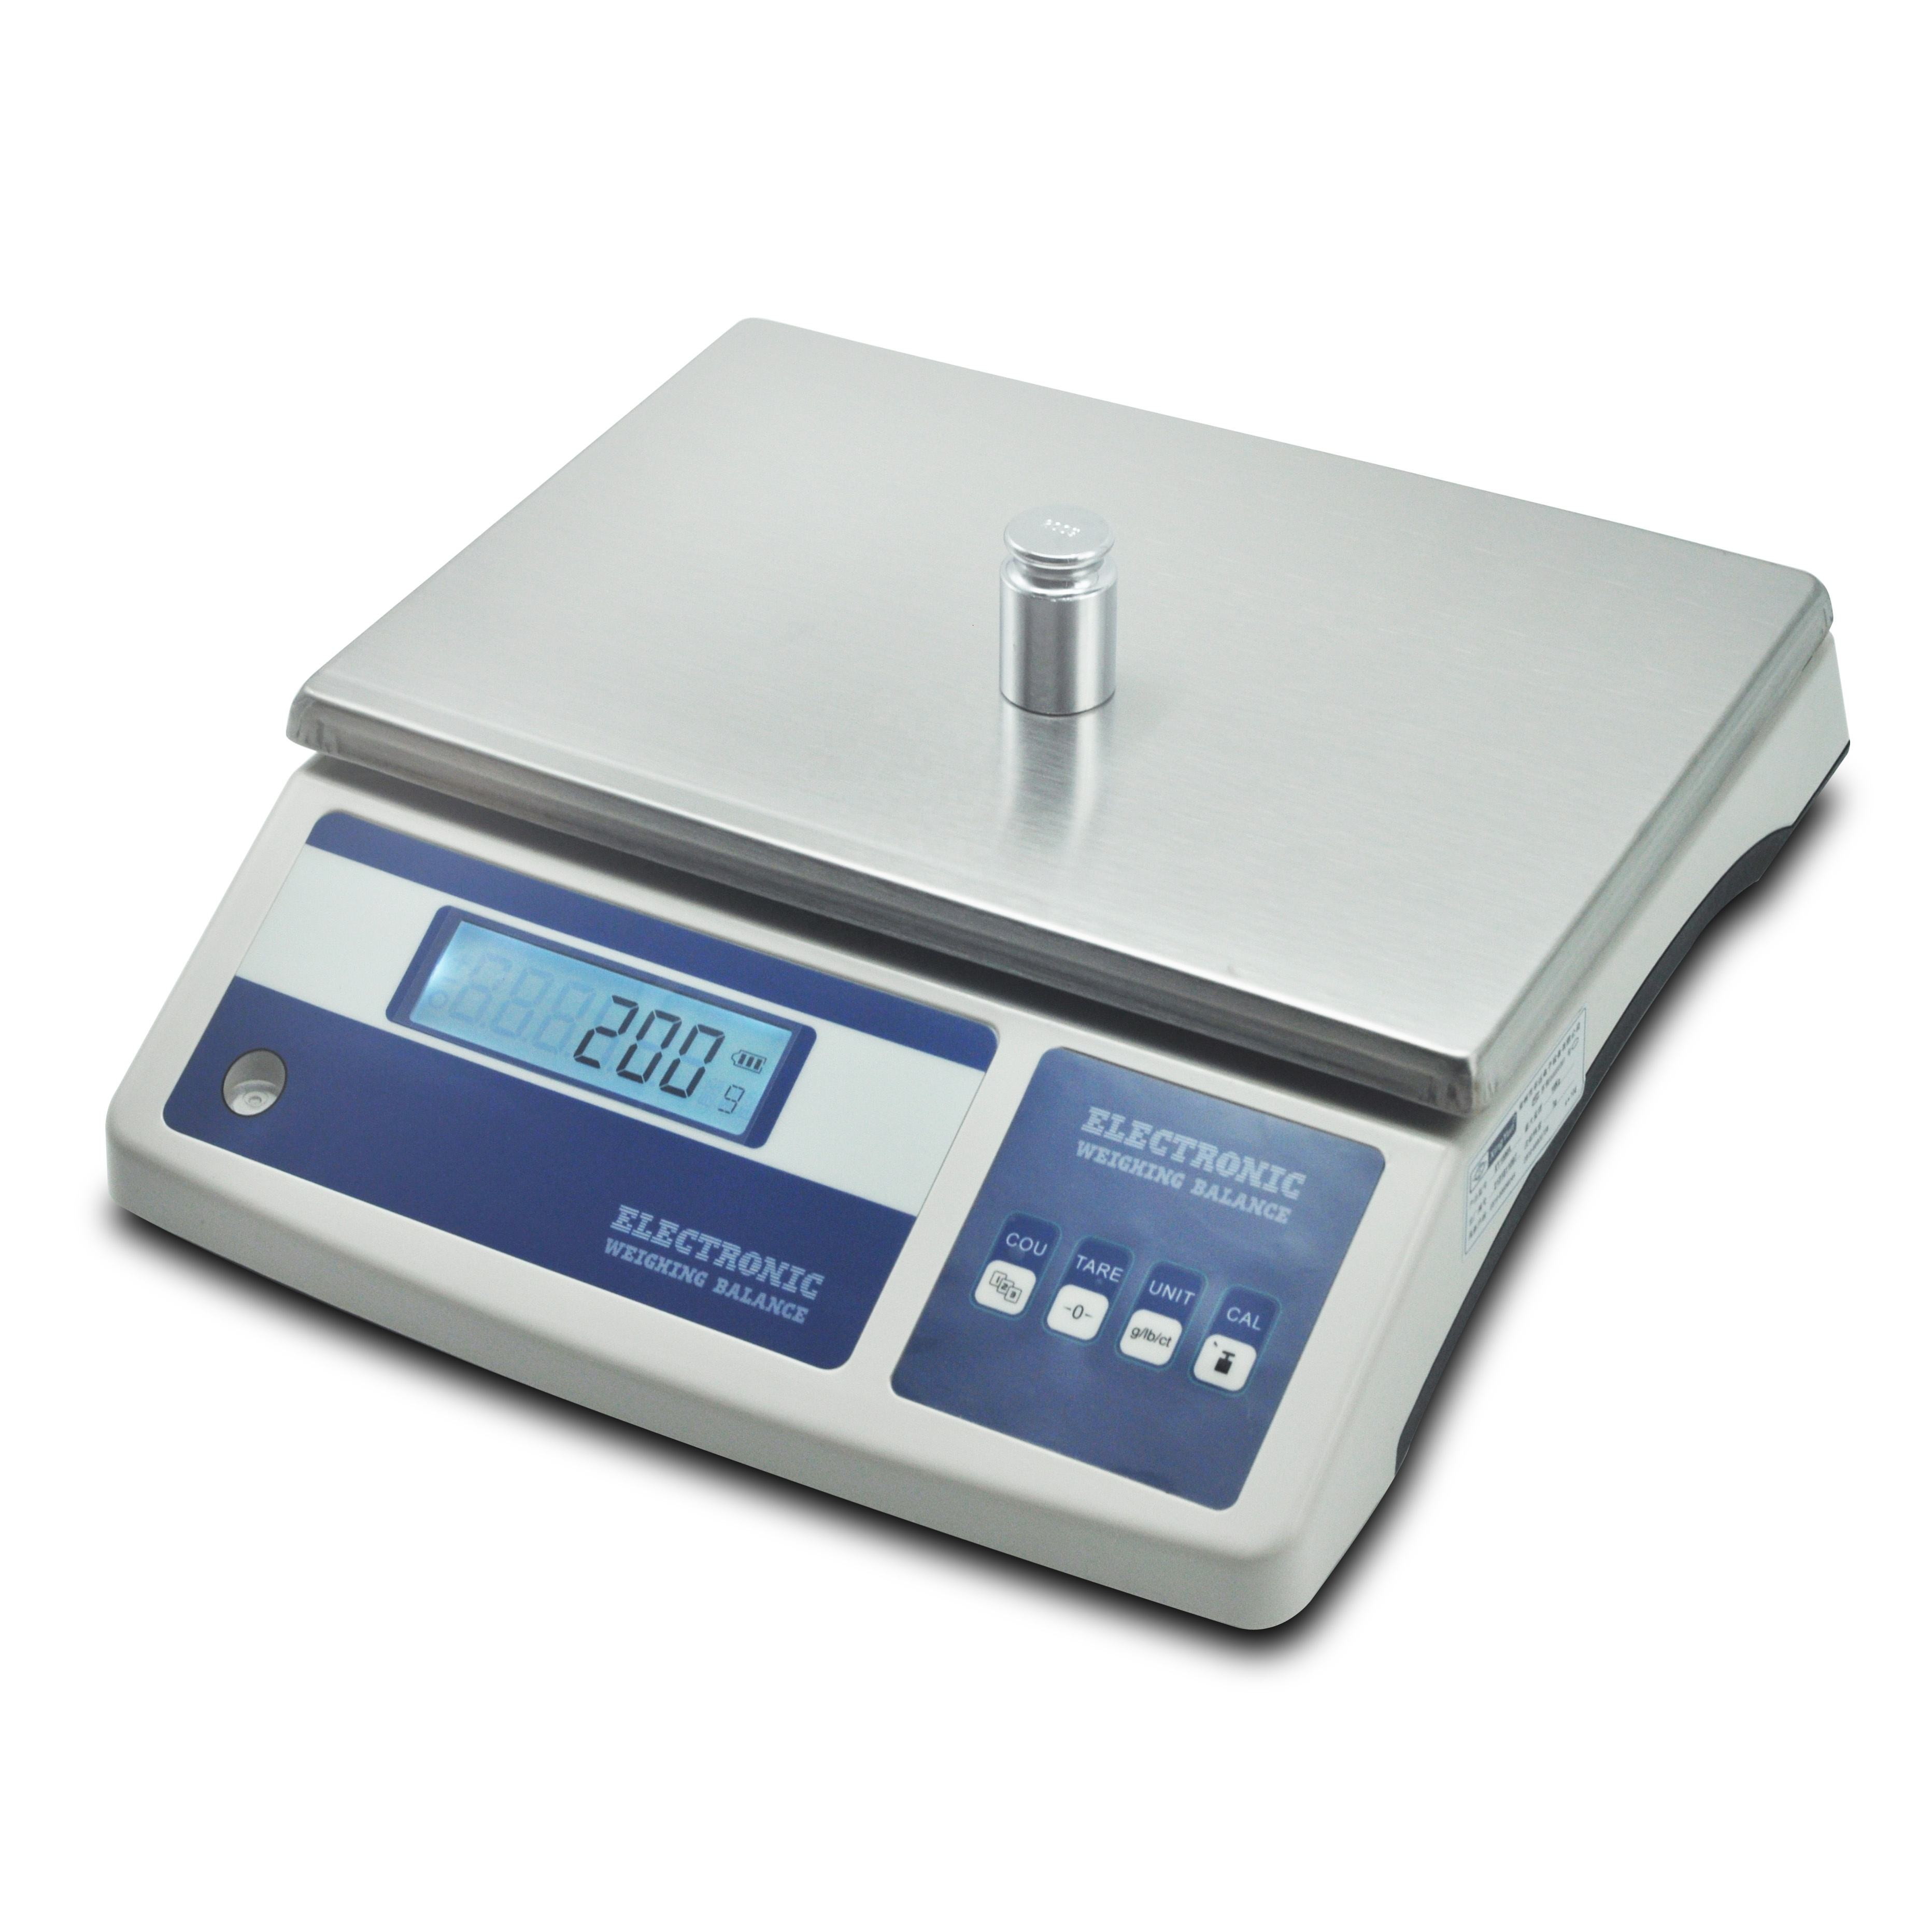 20kg 1g precision electronic weighing balance with rs232 and usb interface